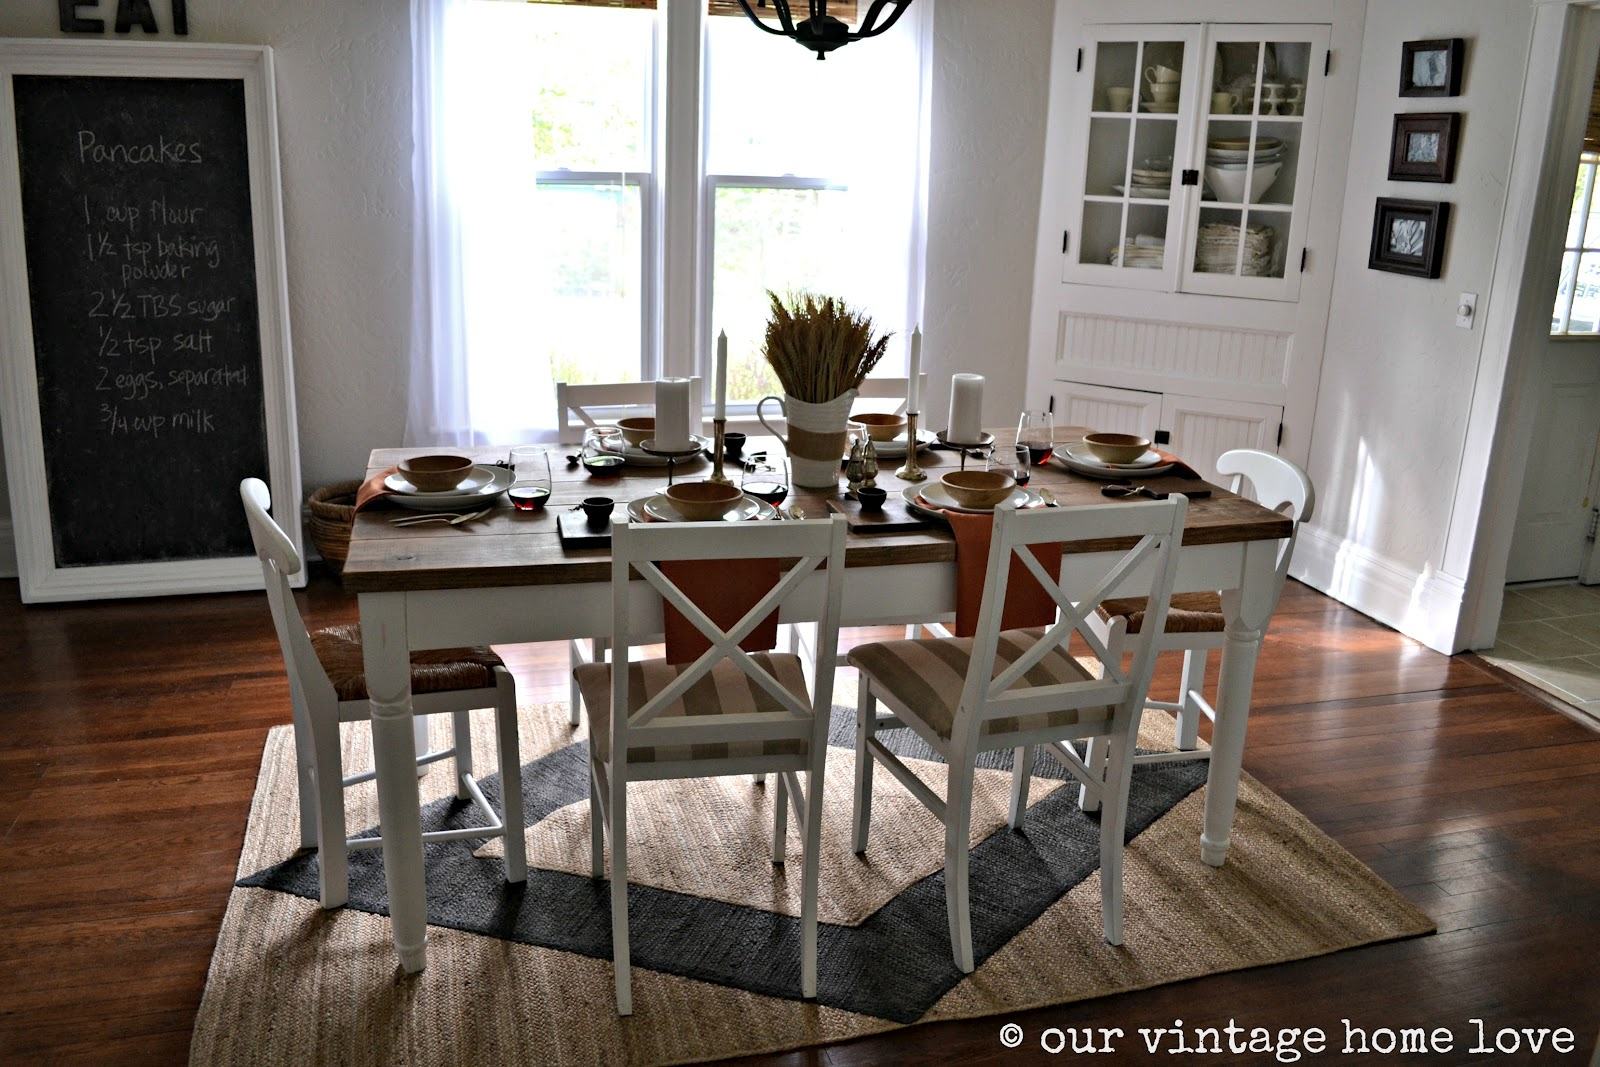 our vintage home love: autumn table decor and a vintage industrial